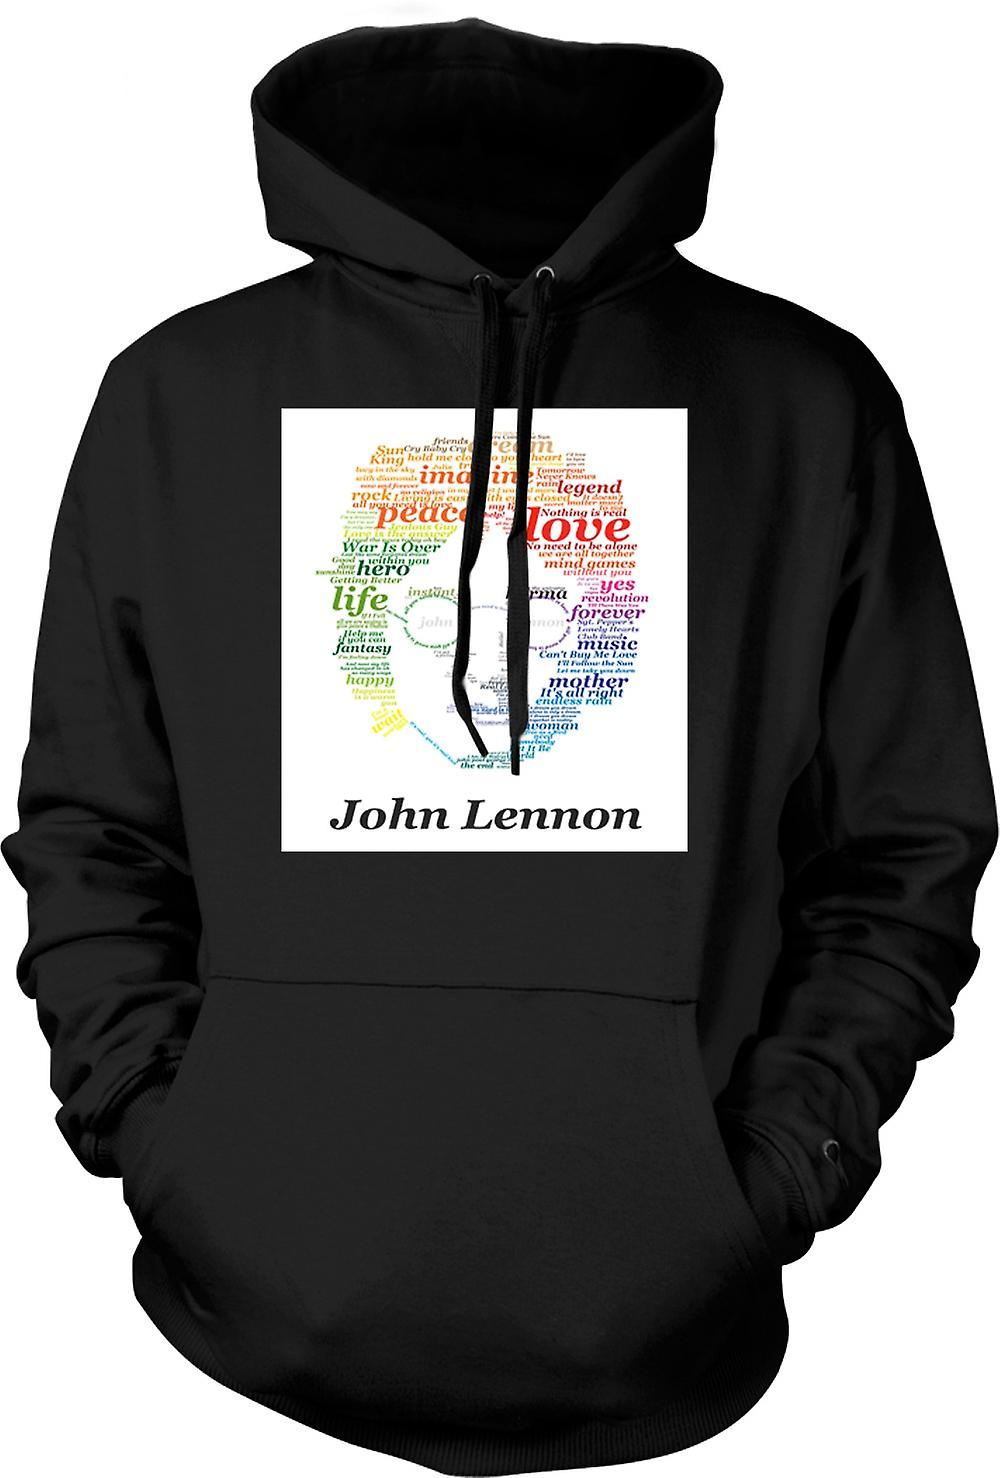 Mens Hoodie - John Lennon Lyrics On Face